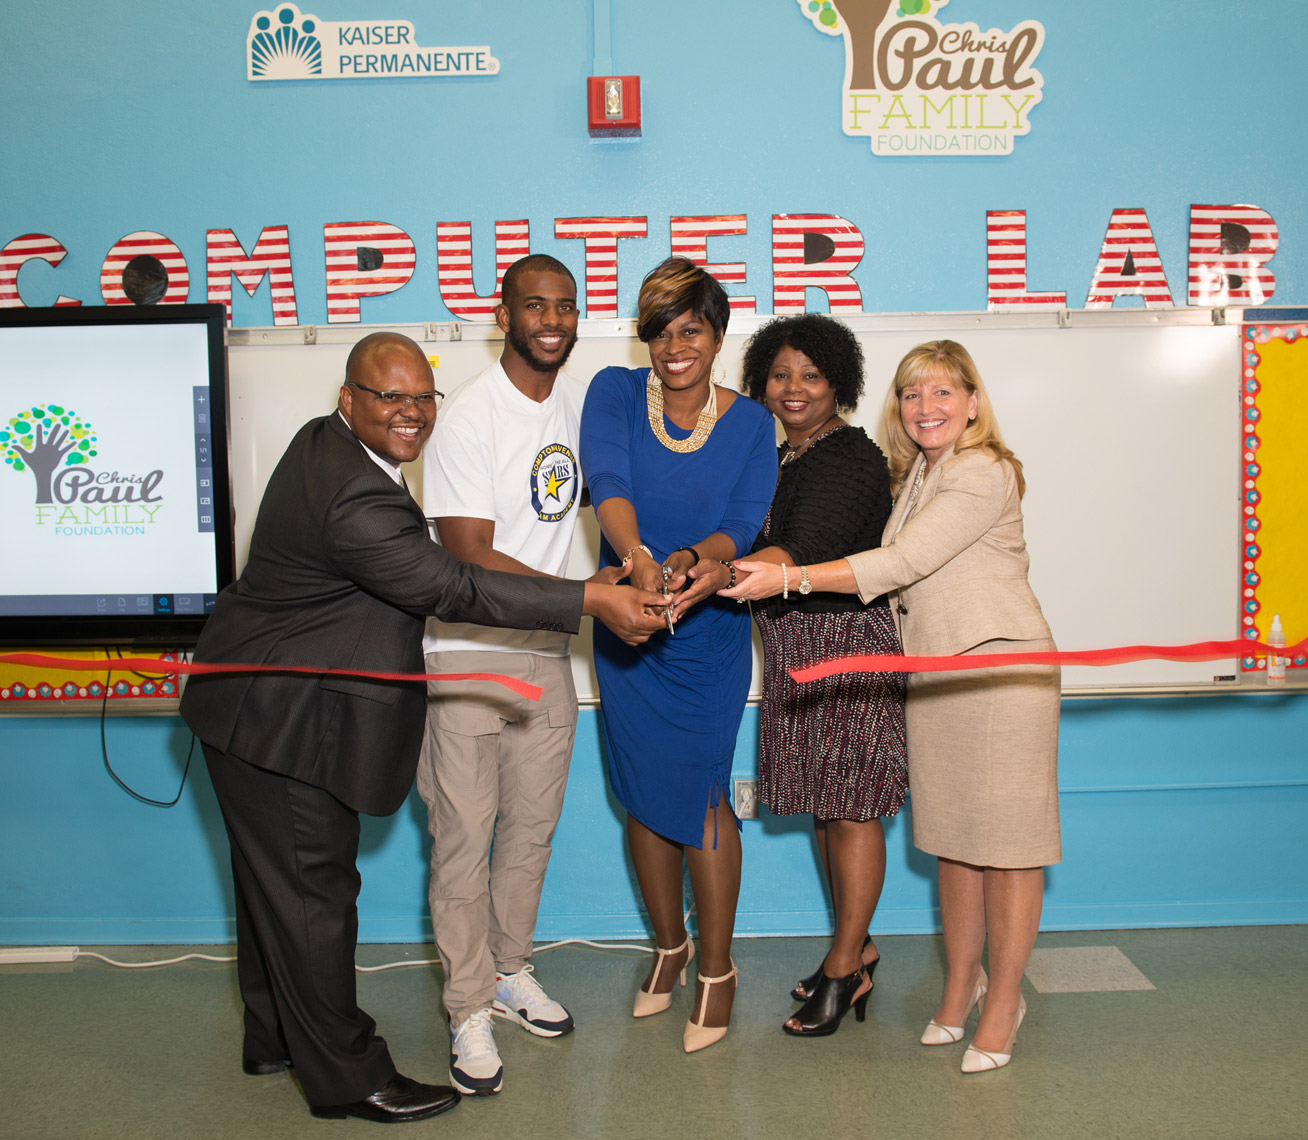 Corporate_event_Kaiser_Permanente_ribbon_cutting_Chris_Paul_1